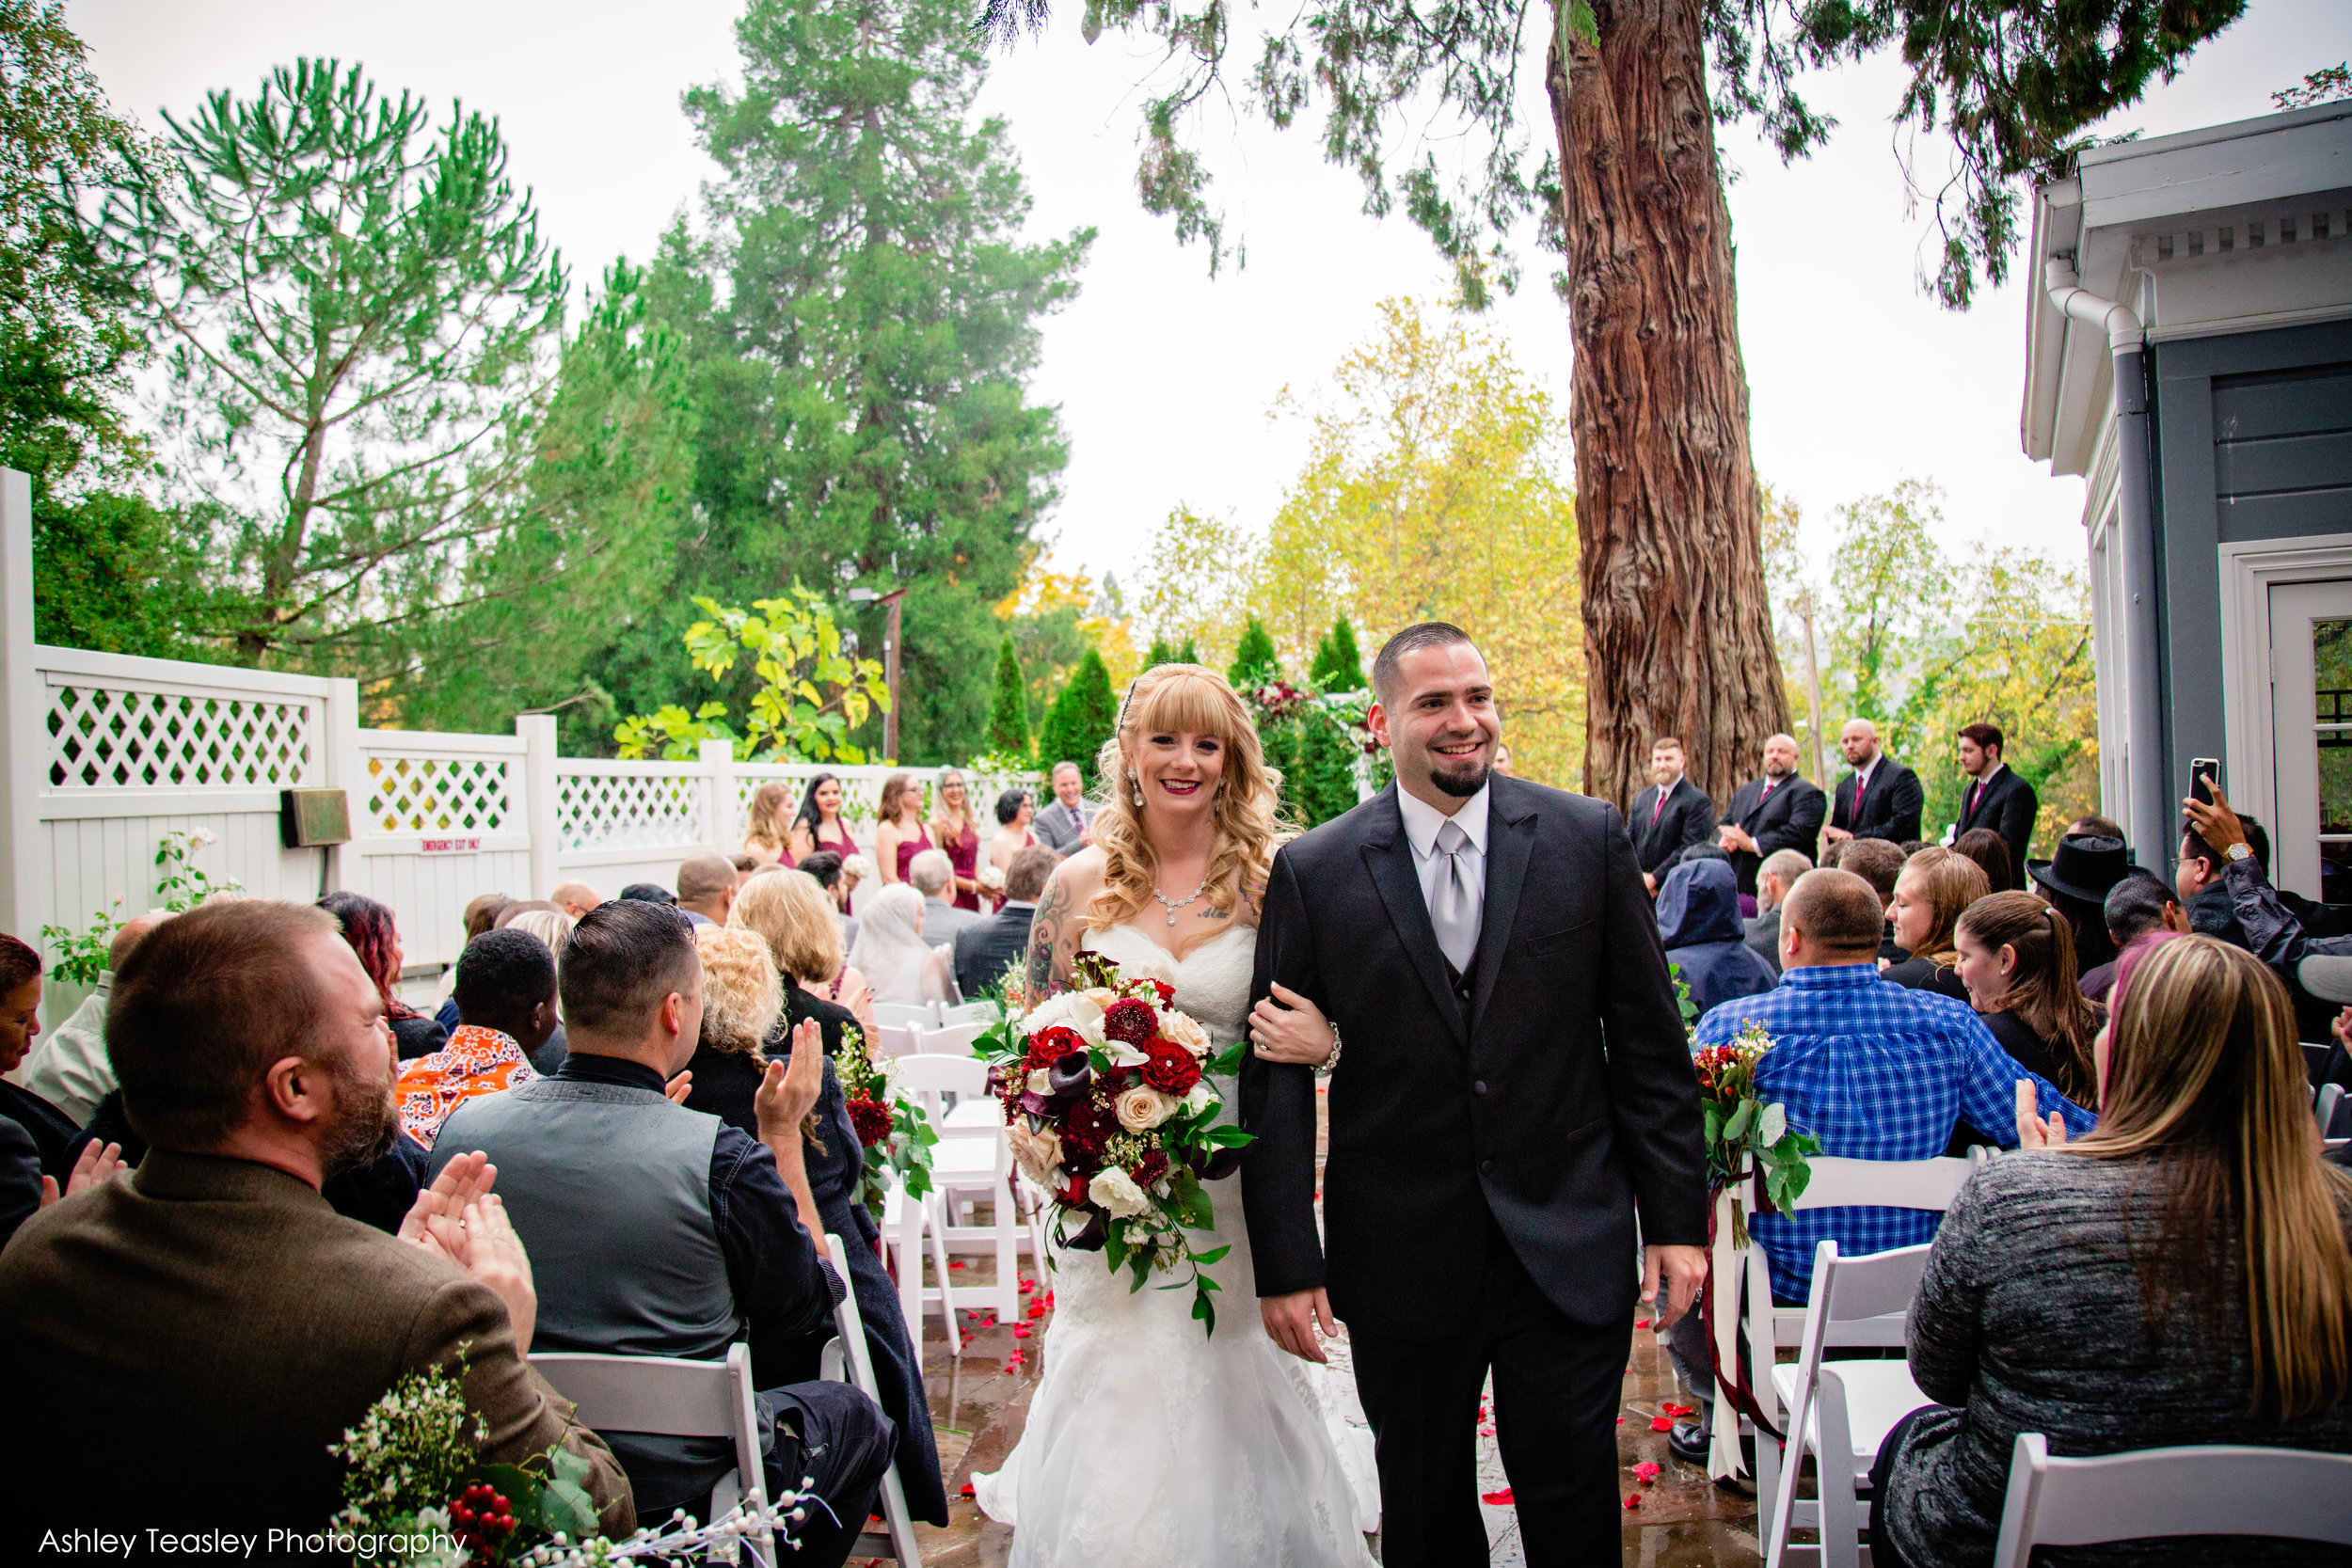 Marlaina & Kristopher - The Sequoia House Wedgewood - Sacramento Wedding Photographer - Ashley Teasley Photography--27.JPG